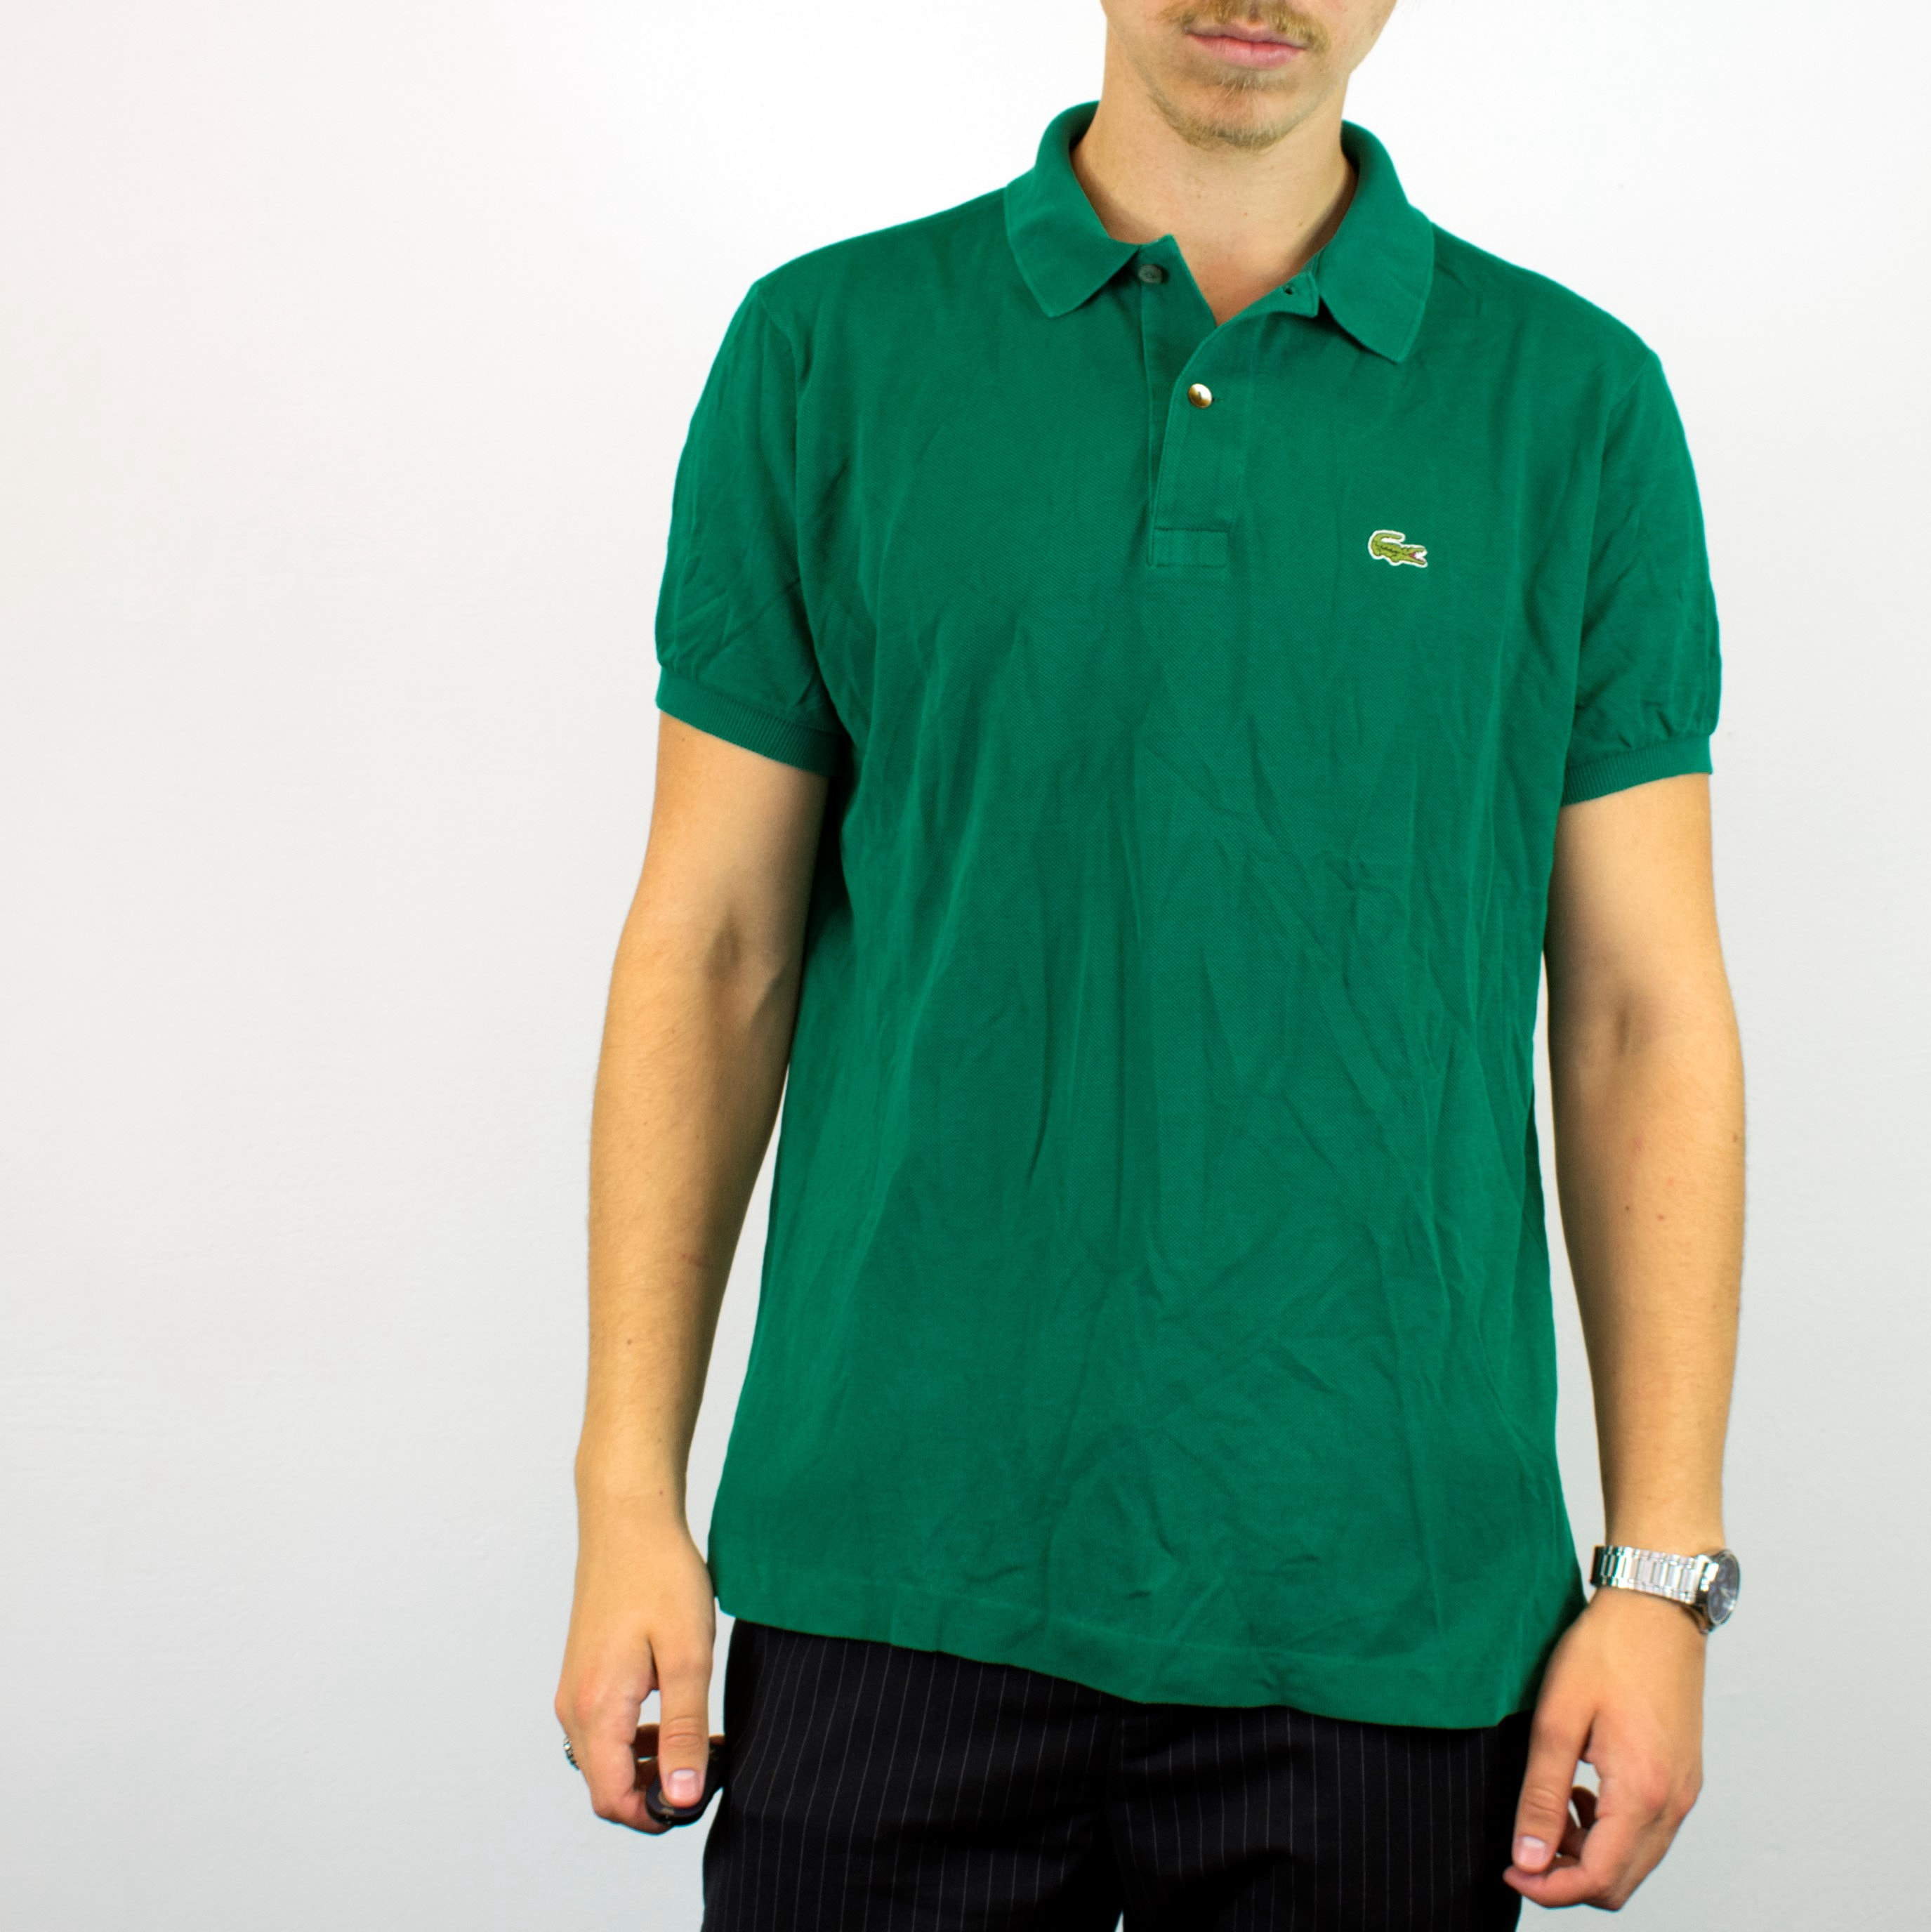 Unisex Vintage Lacoste polo shirt in green has a small logo on the front size L